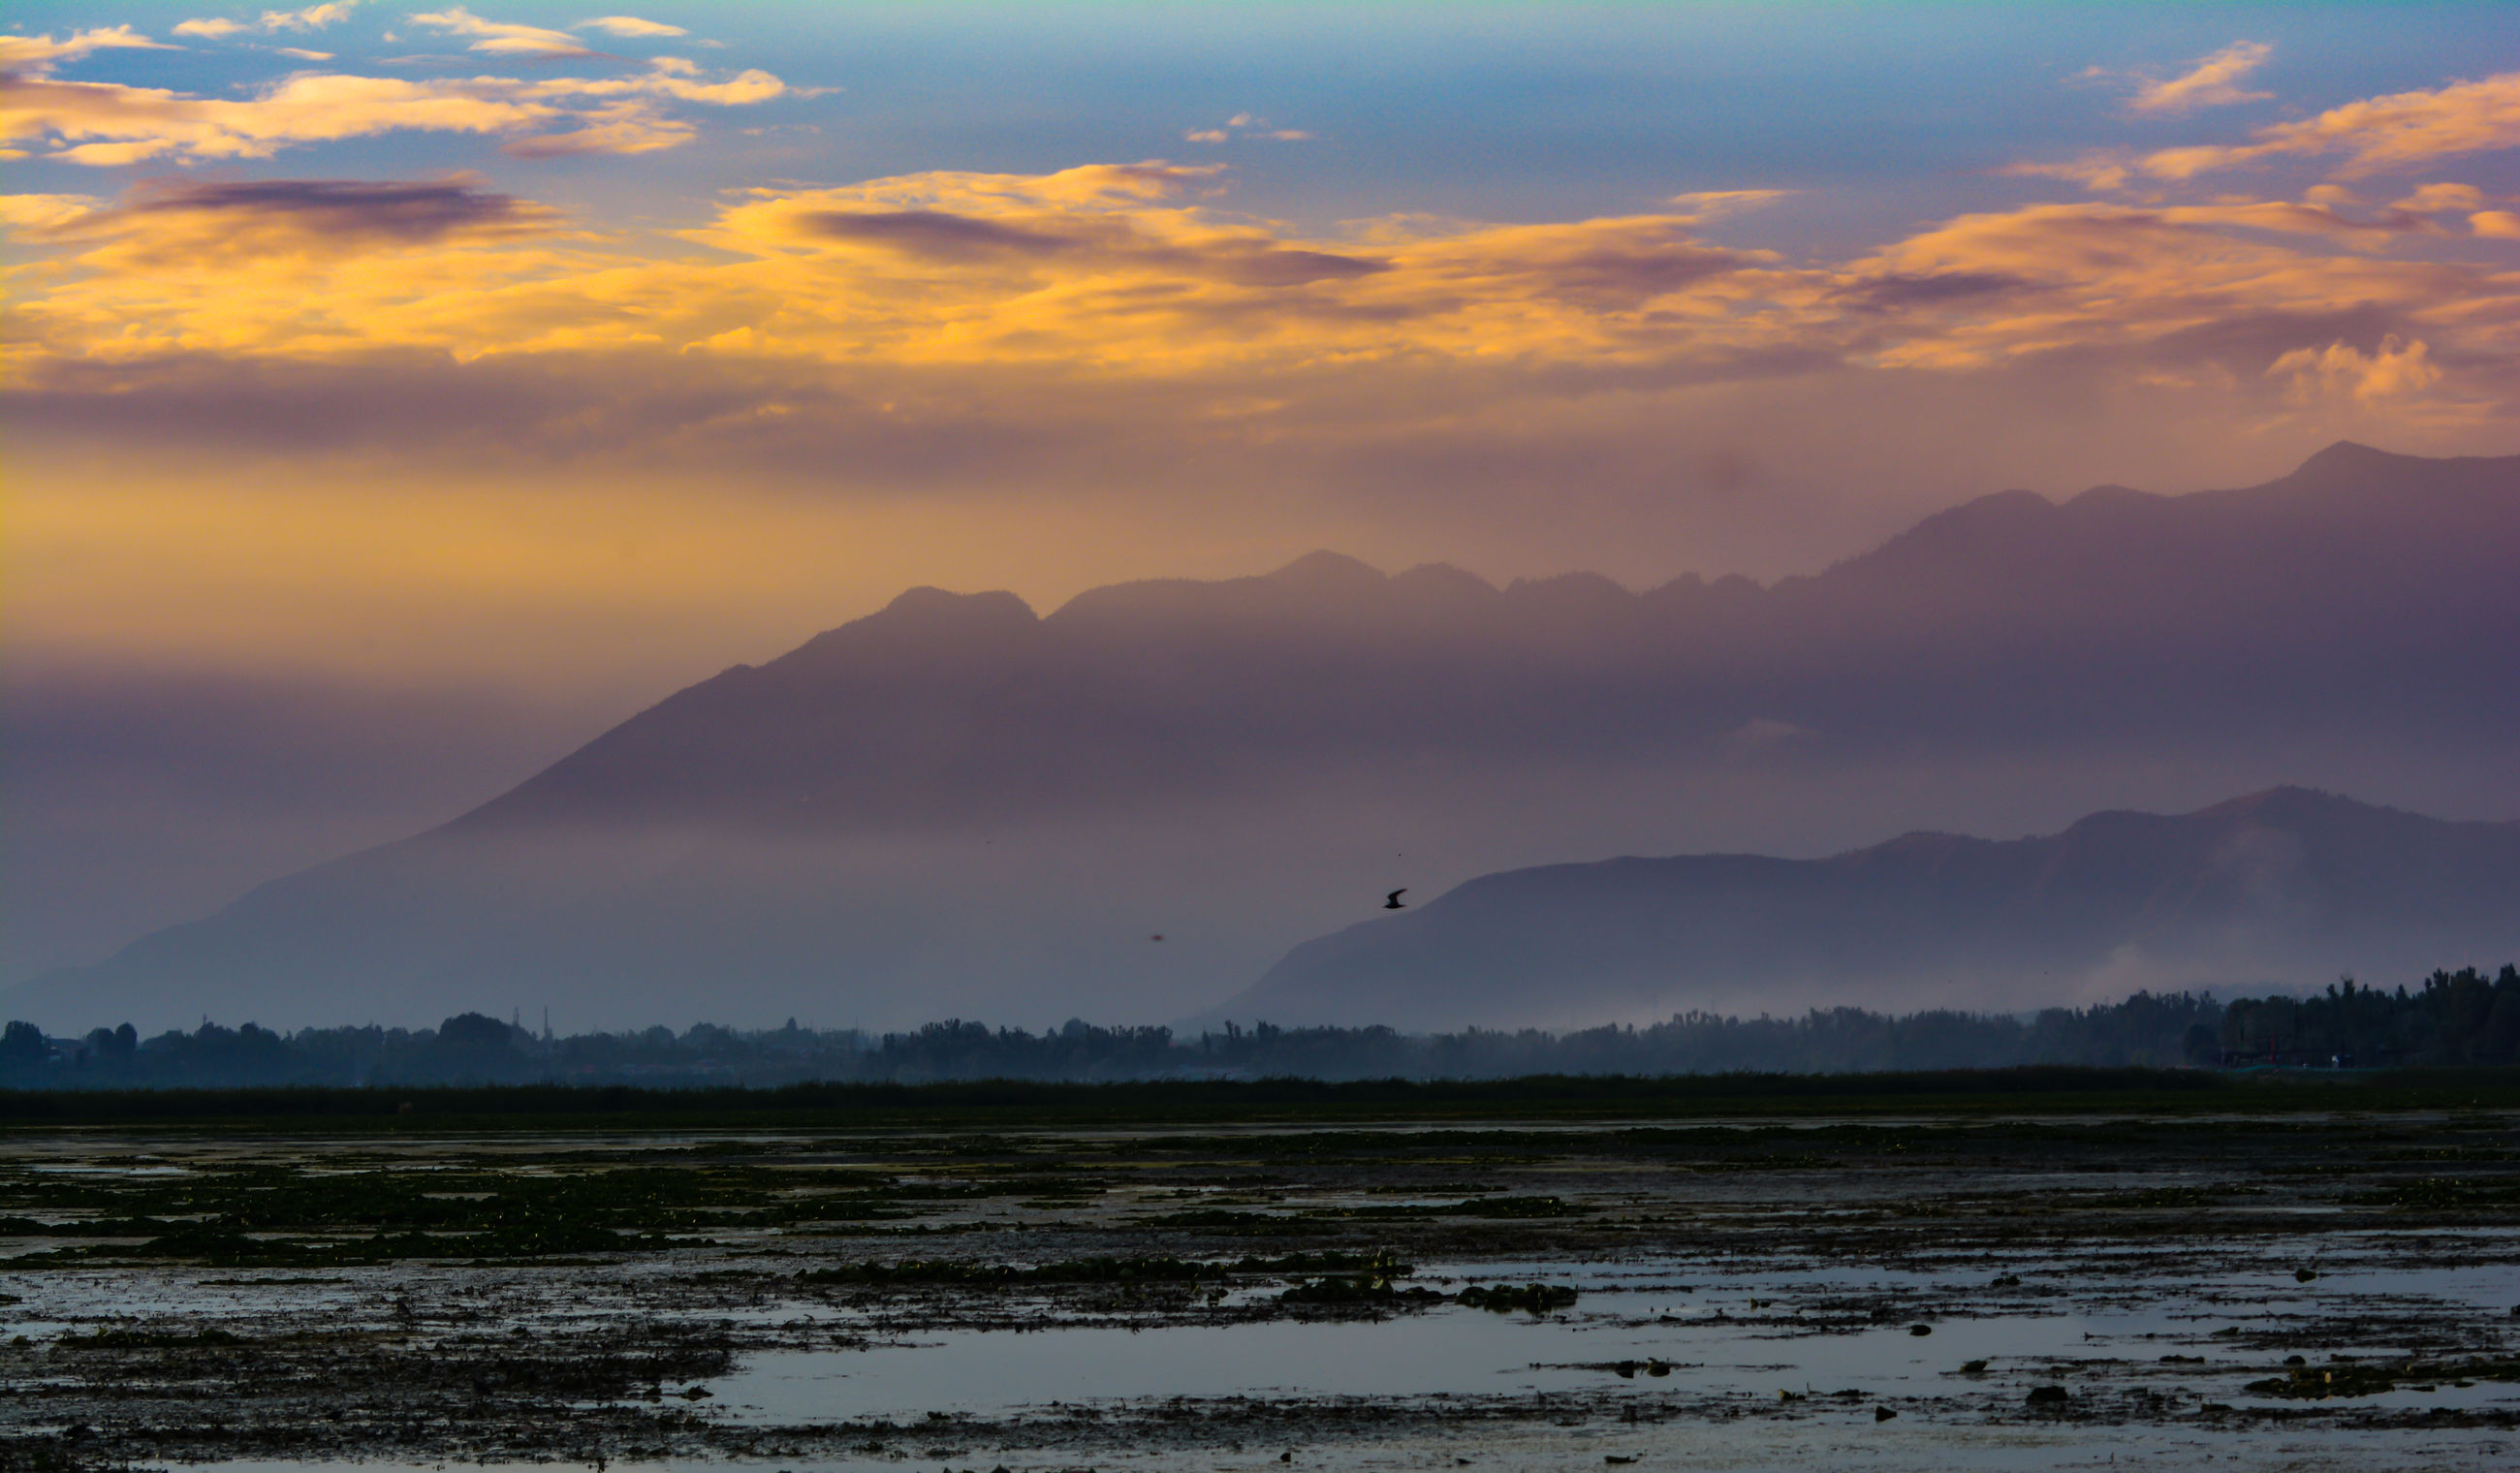 SCENIC VIEW OF SUNSET OVER MOUNTAINS